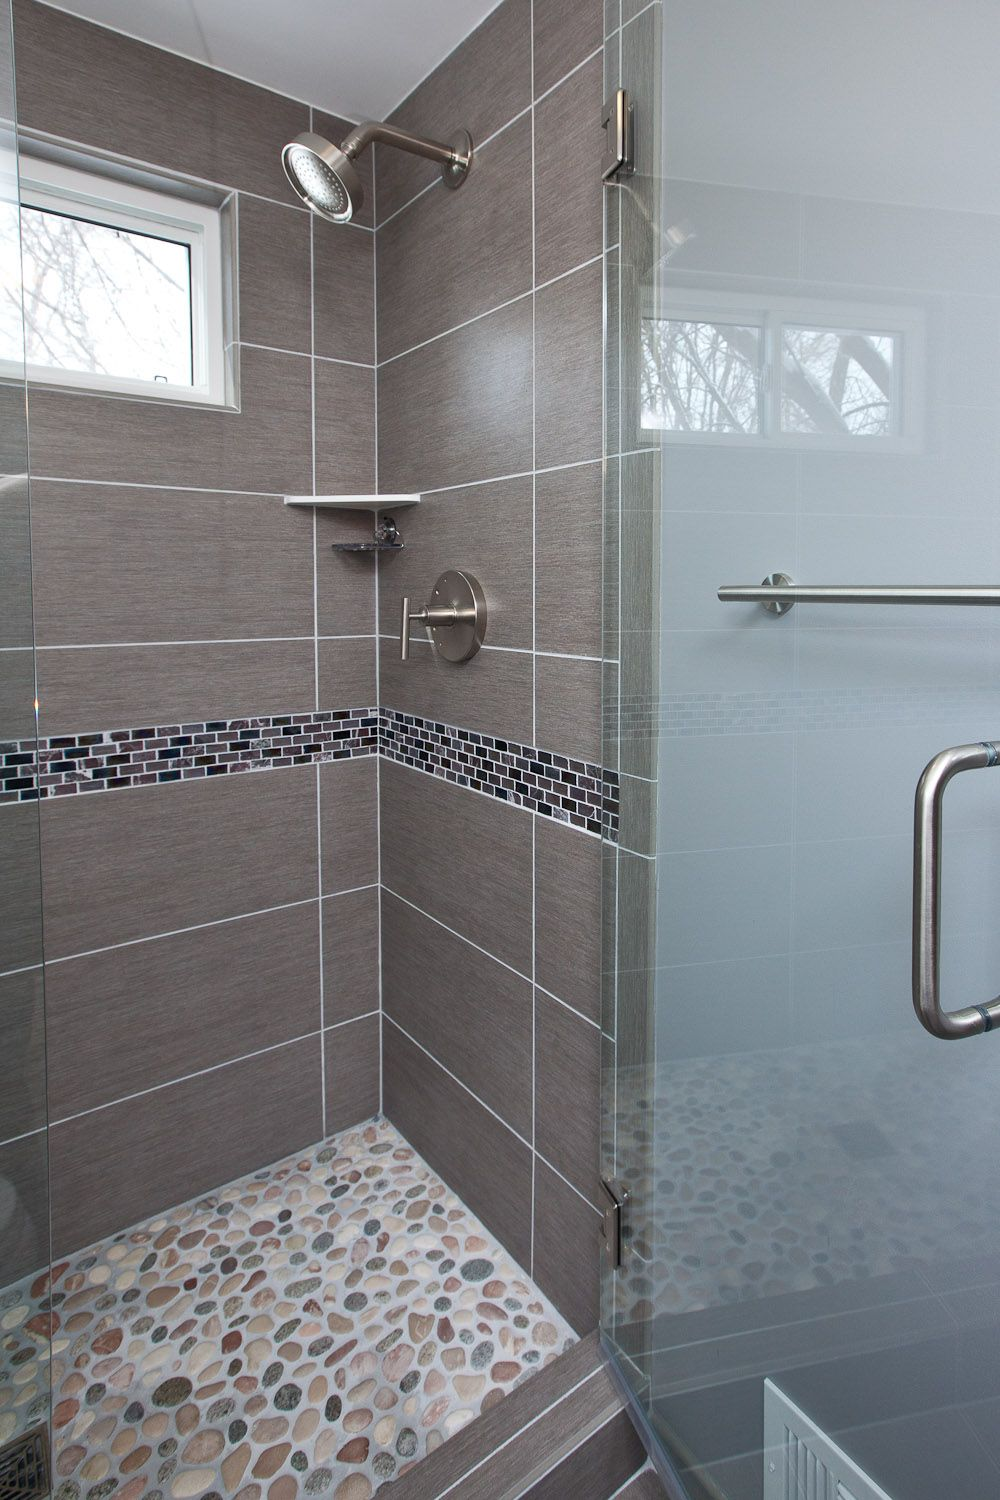 Grey Porcelain Tile Was Chosen For The Floor Shower Walls And Wall Behind The Vanity A Unique